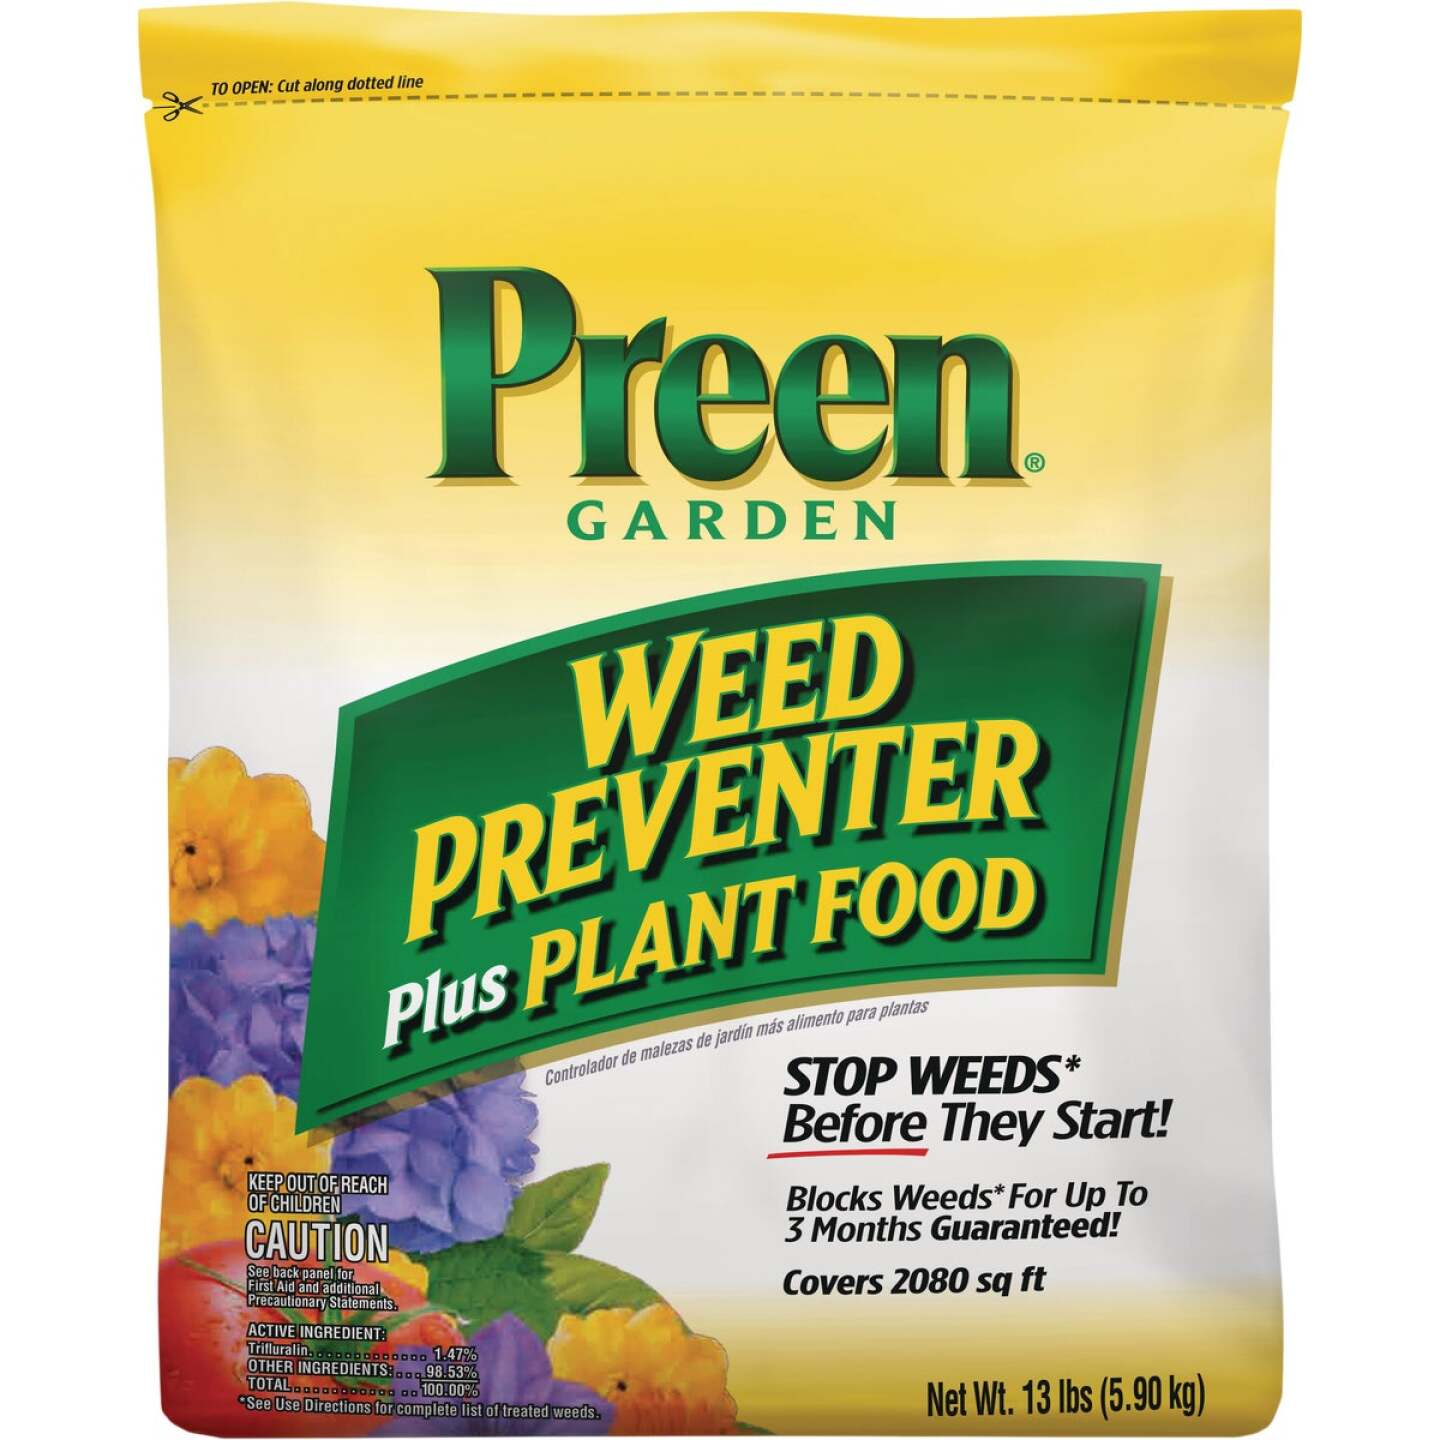 Preen Grass & Weed Preventer Plus Plant Food, 13 Lb. Image 1